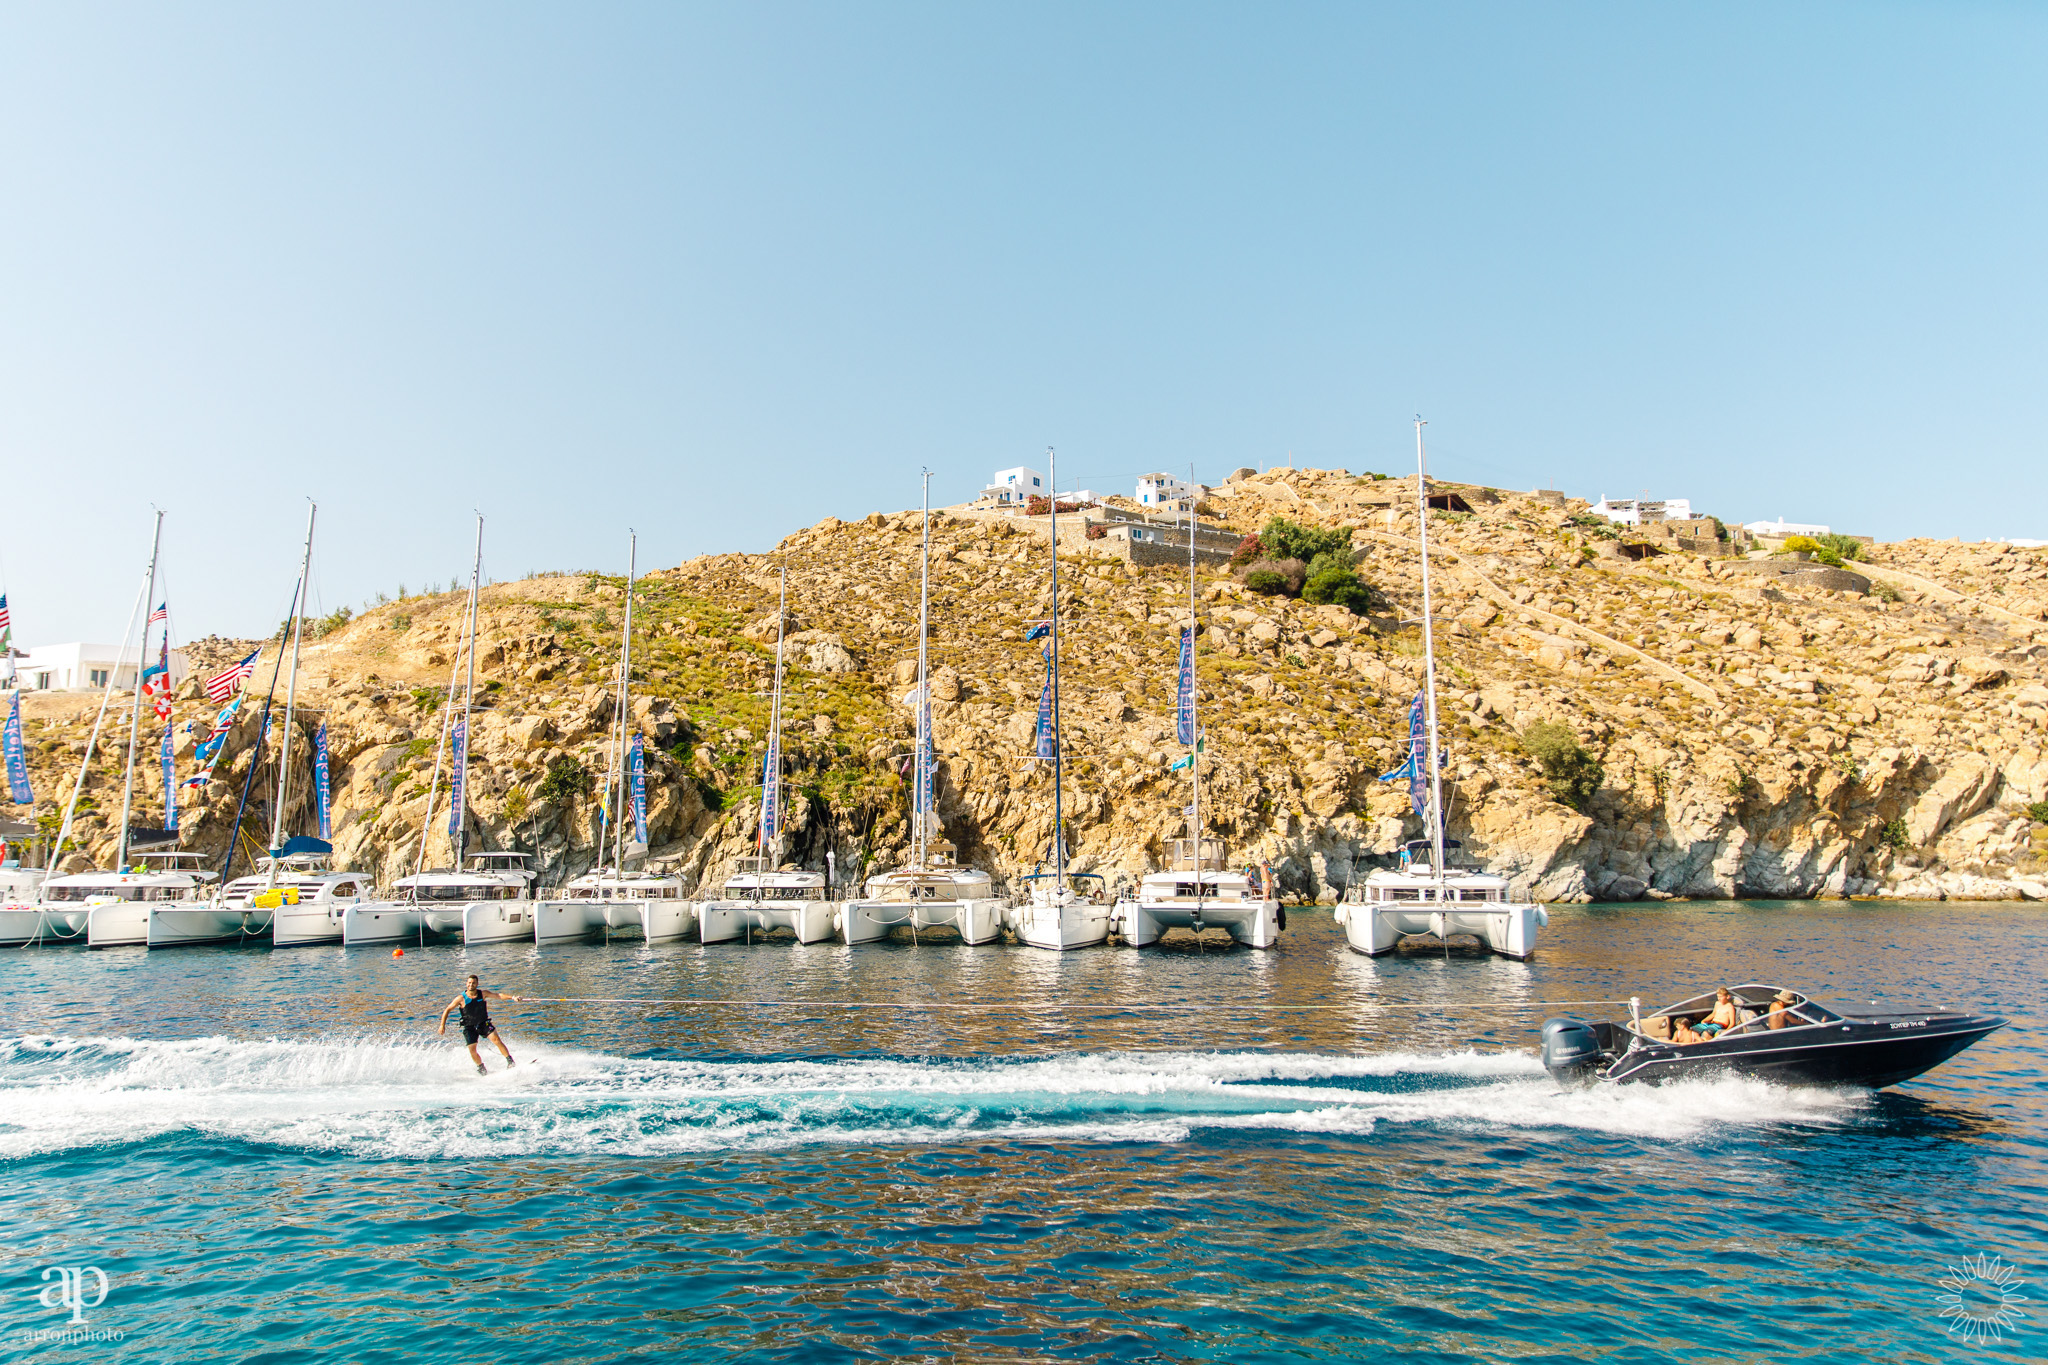 Buzzing the raft - The Mykonos Route